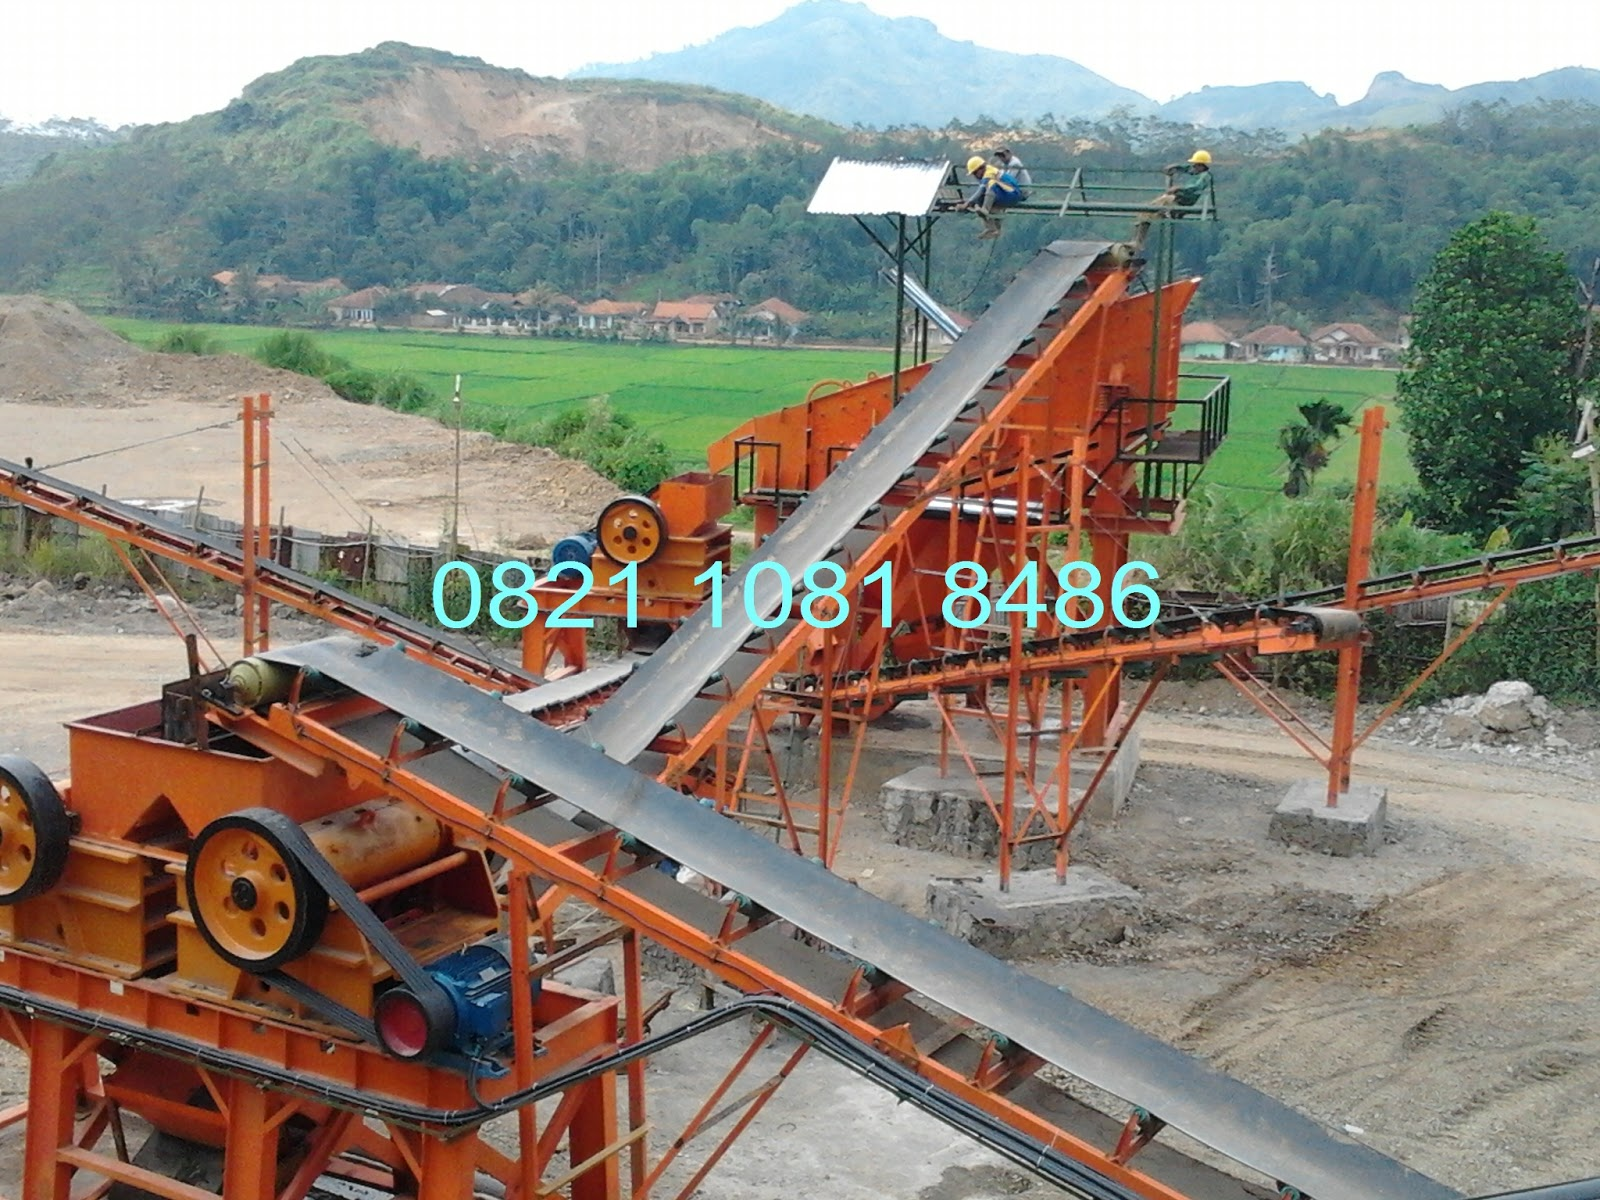 jaw crusher plant Portable jaw crushers, cone crushers, and impact crushers for every need elrus pit boss crusher keeps your pit up and running portable elrus crushing plants.